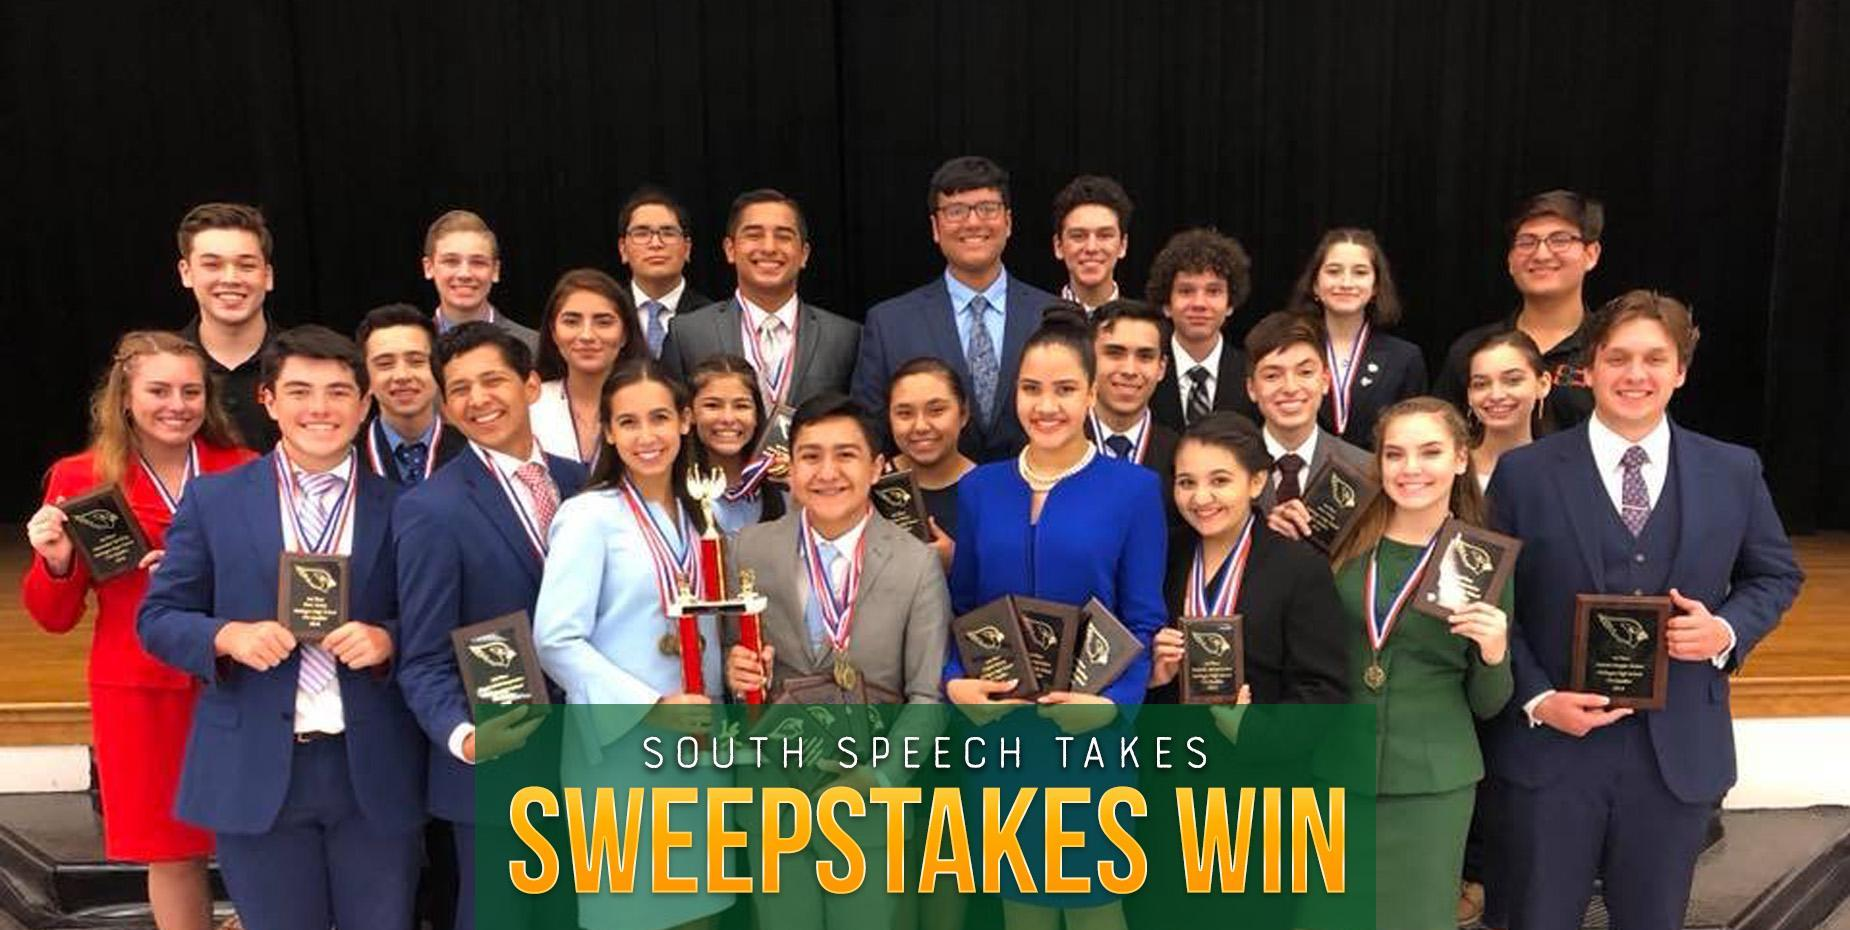 South Speech takes sweepstakes win at first TFA tournament of the season